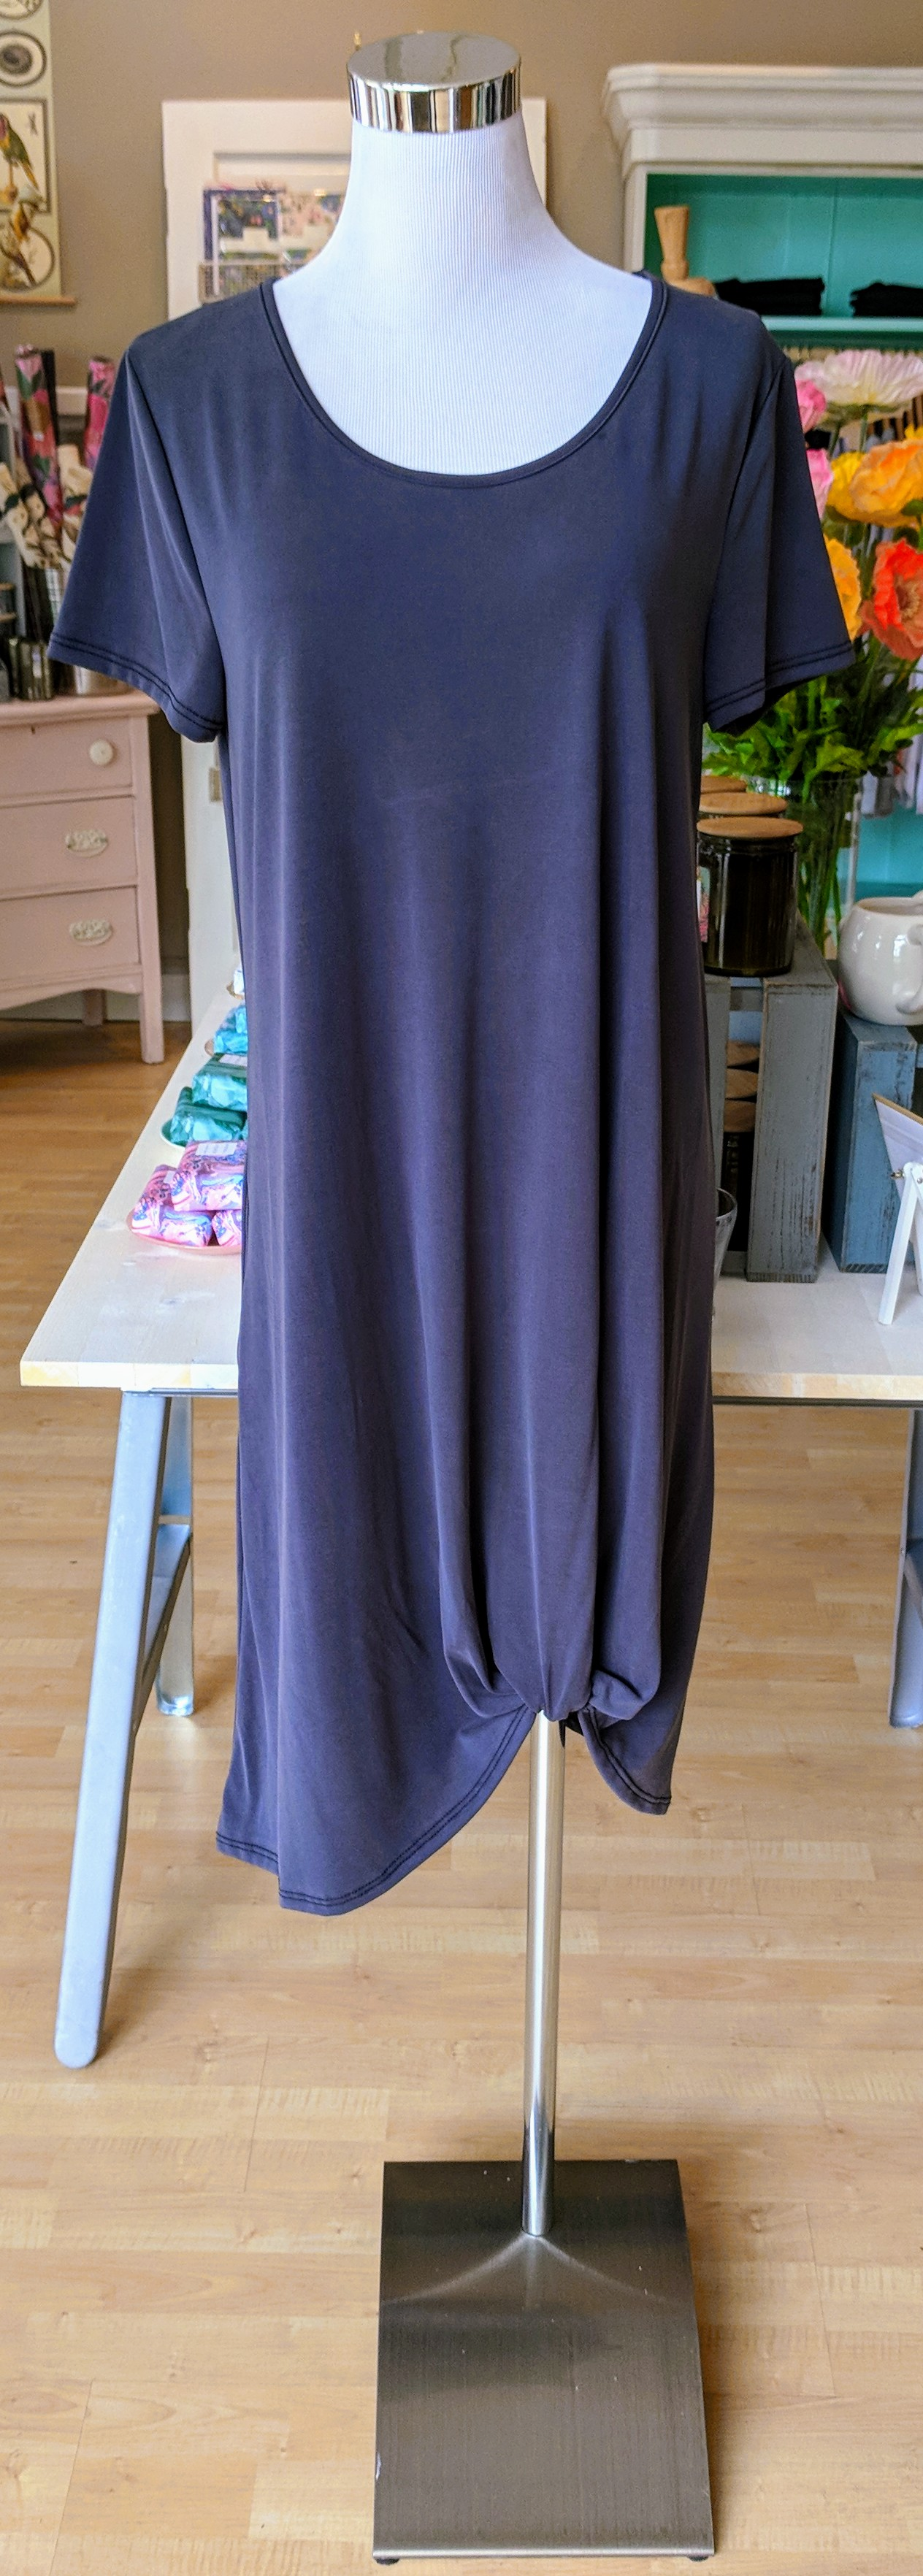 Charcoal knit dress with knotted hem.